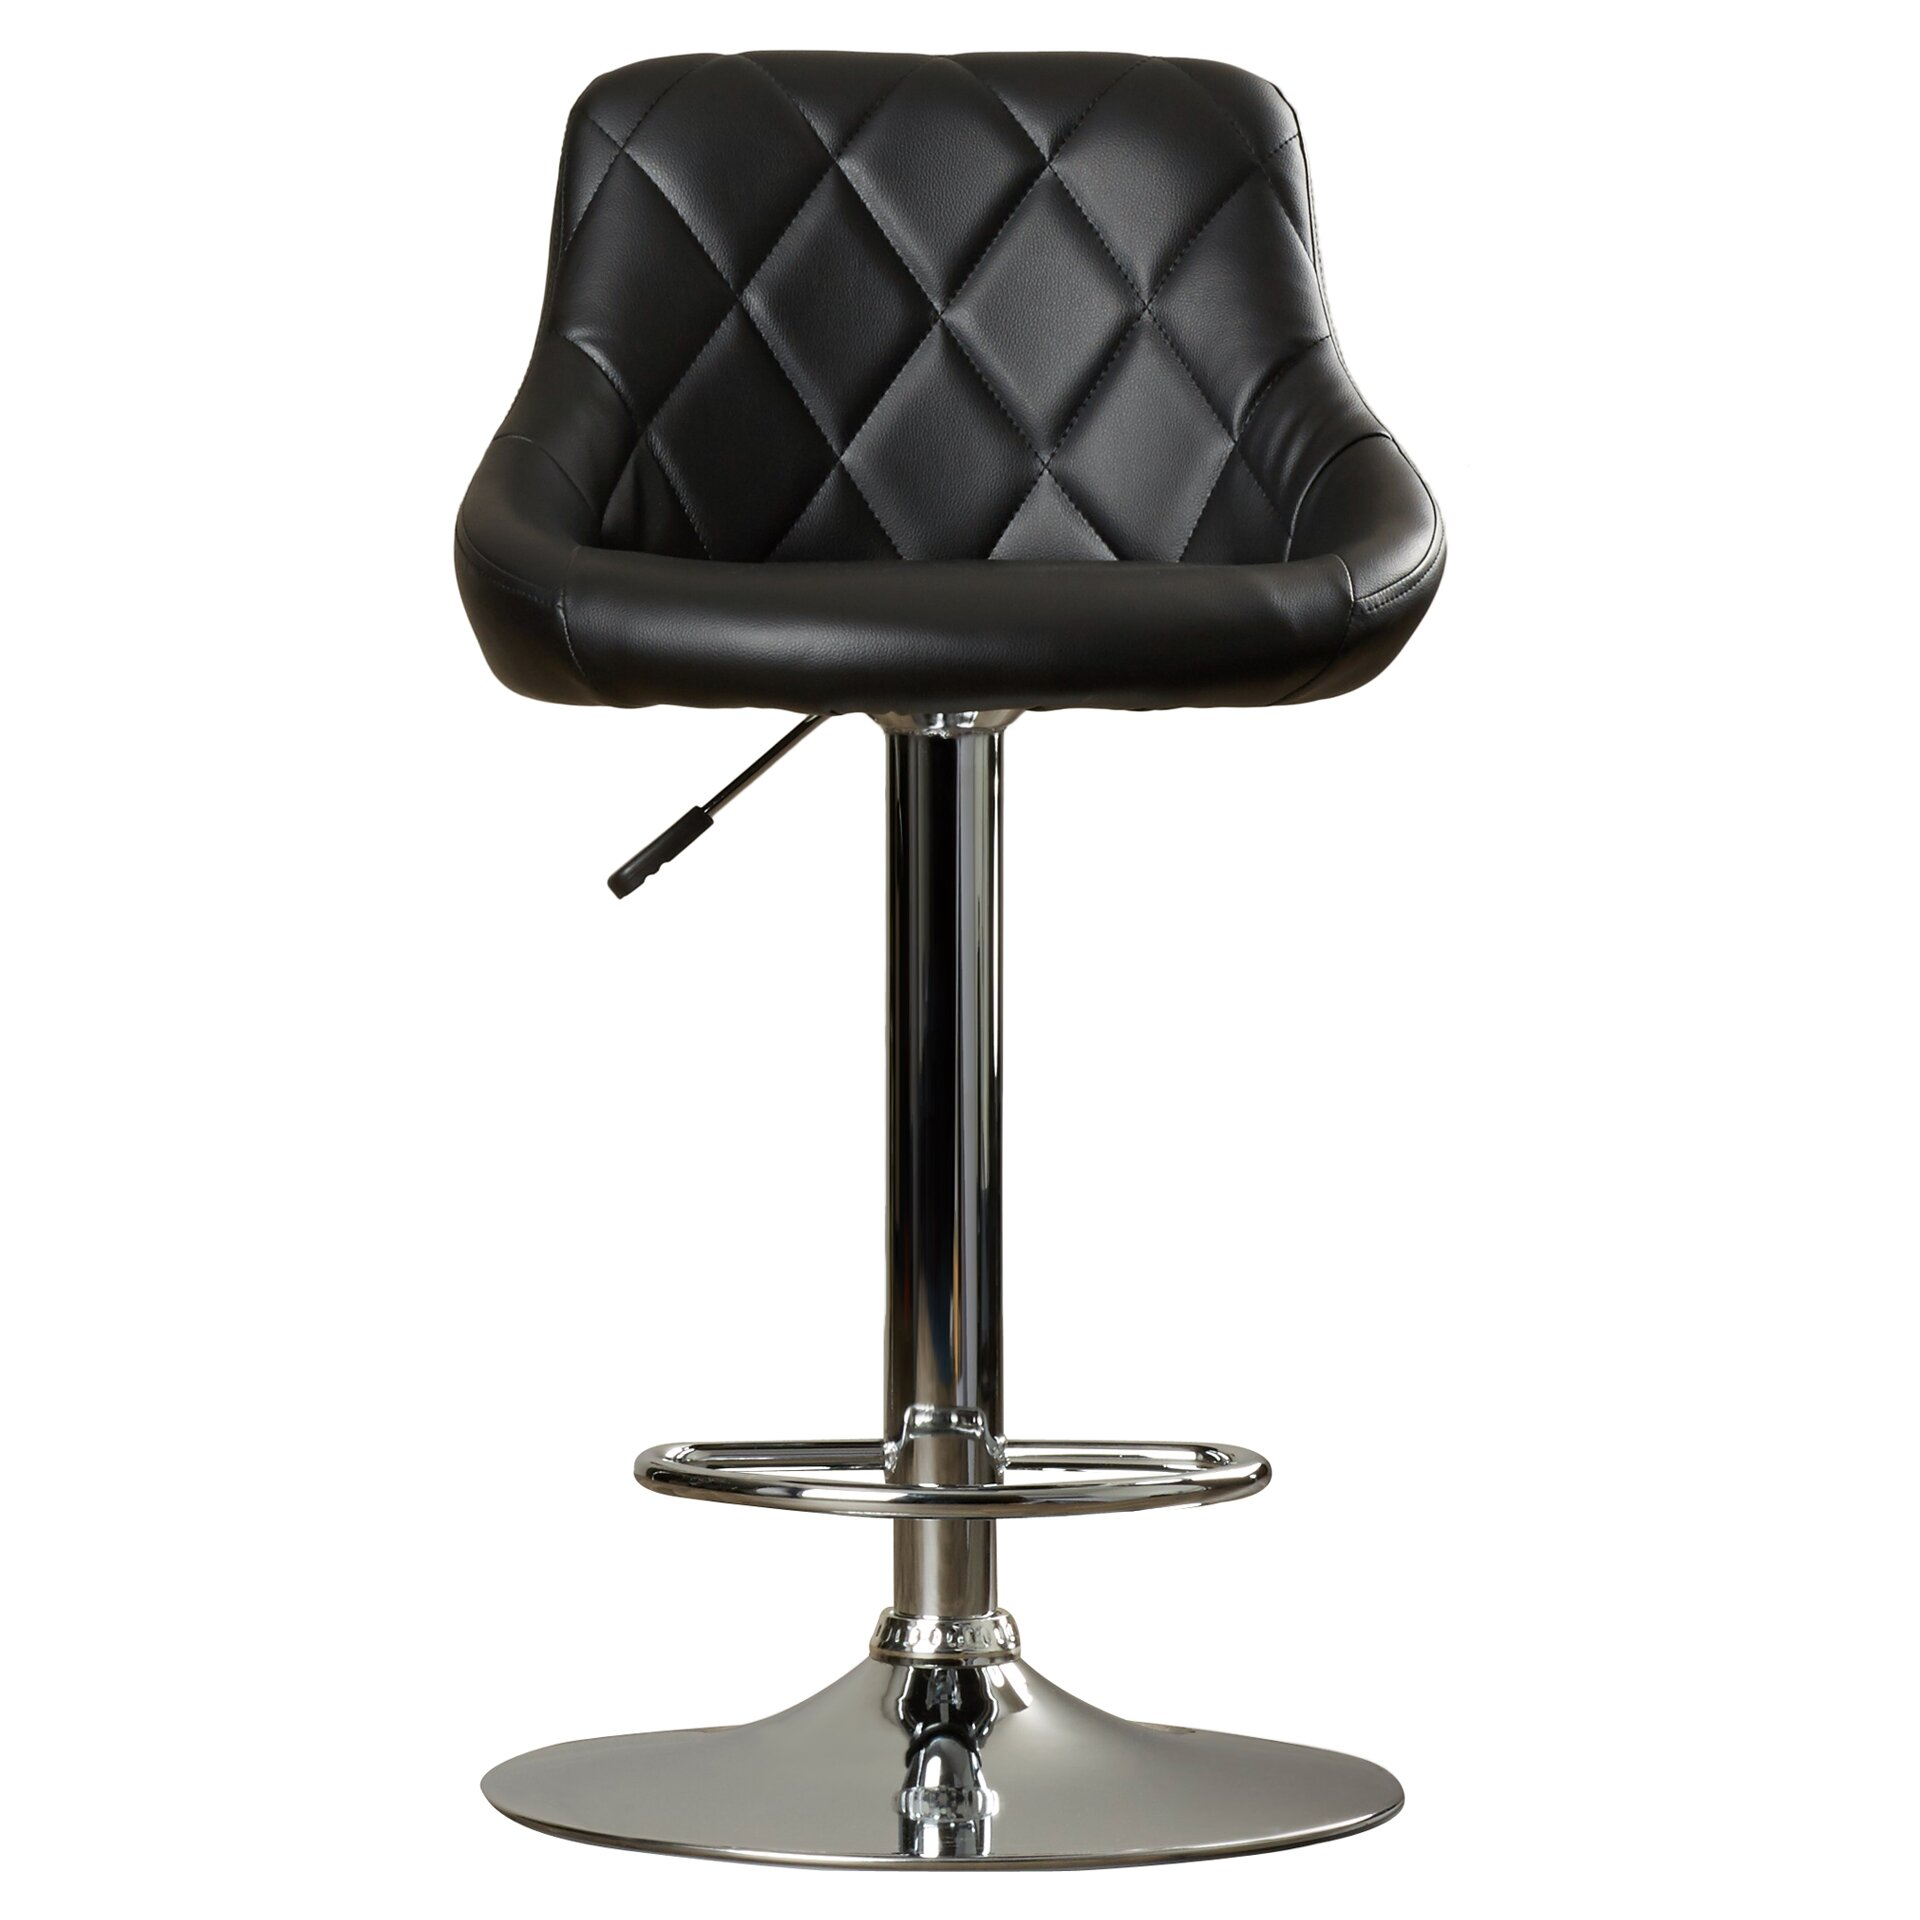 Wade Logan Clay Adjustable Height Swivel Bar Stool  : Contemporary2BVinyl2BAdjustable2BHeight2BSwivel2BBar2BStool2Bwith2BCushion from www.wayfair.com size 1920 x 1920 jpeg 238kB